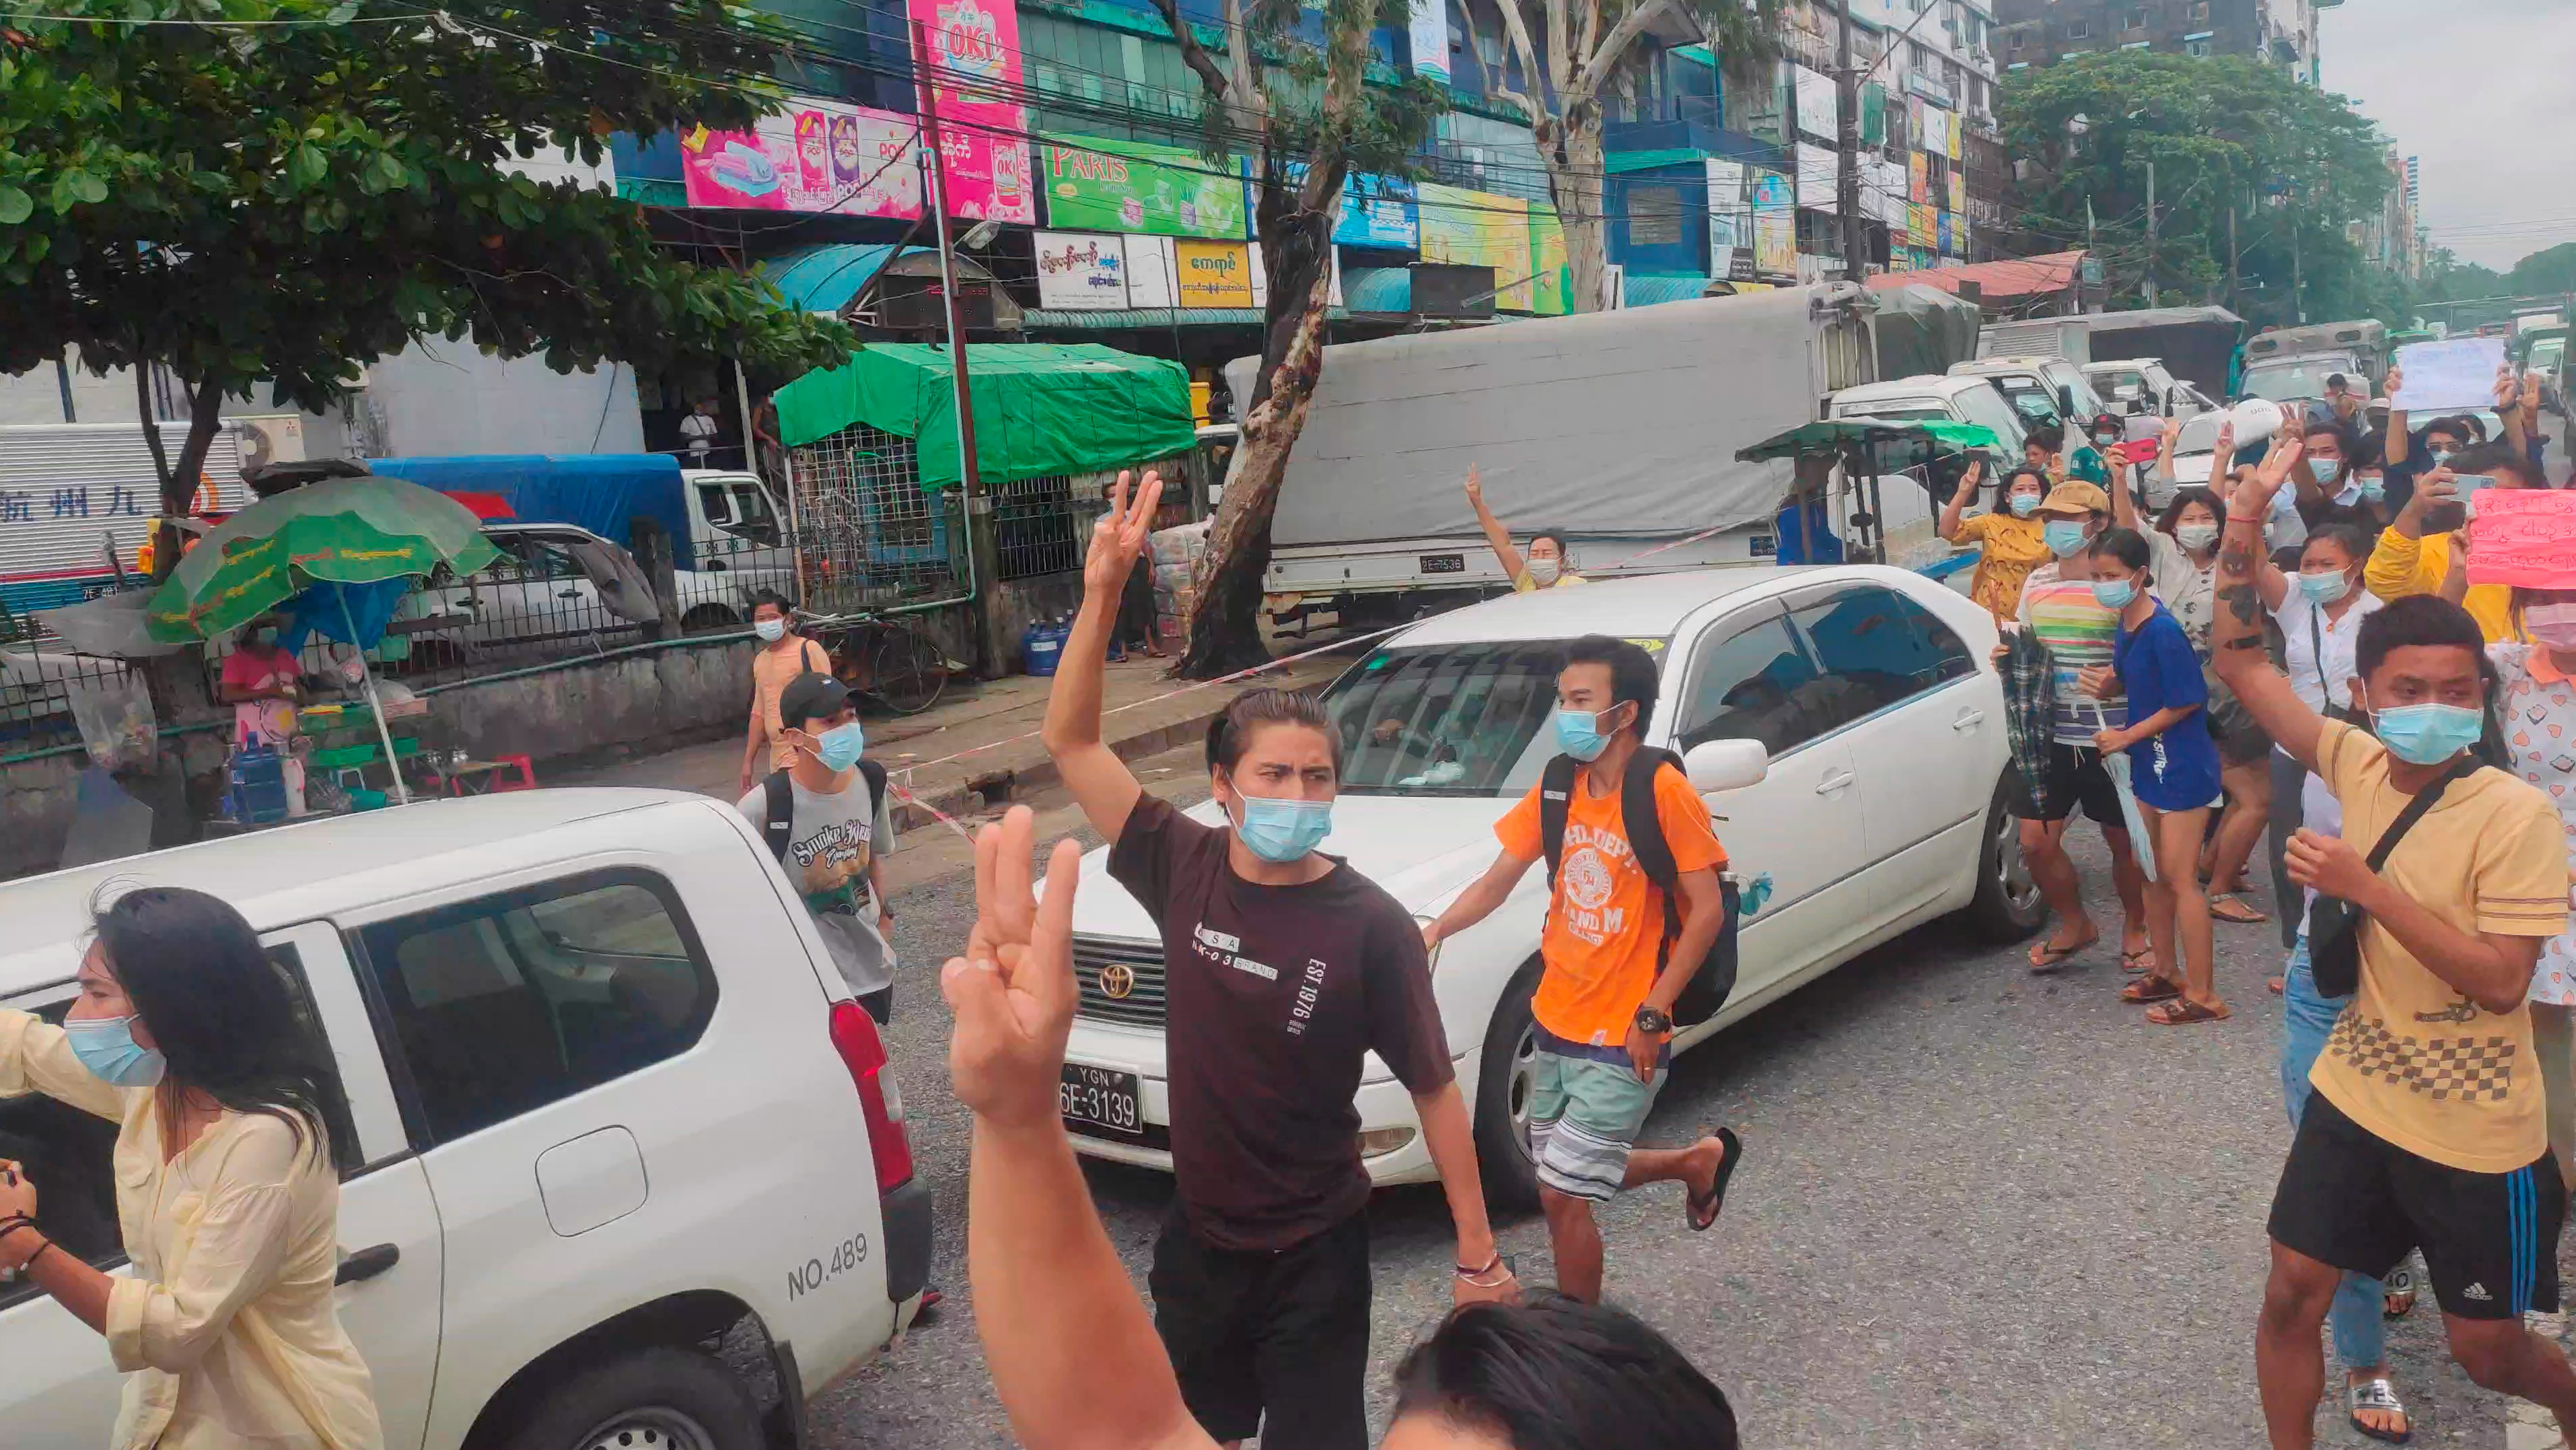 Demonstrators show a three-finger salute during a flash protest in solidarity with the Mandalay People?s Defence Force, in Yangon, Myanmar June 22, 2021. in this screengrab obtained by Reuters from a social media video.